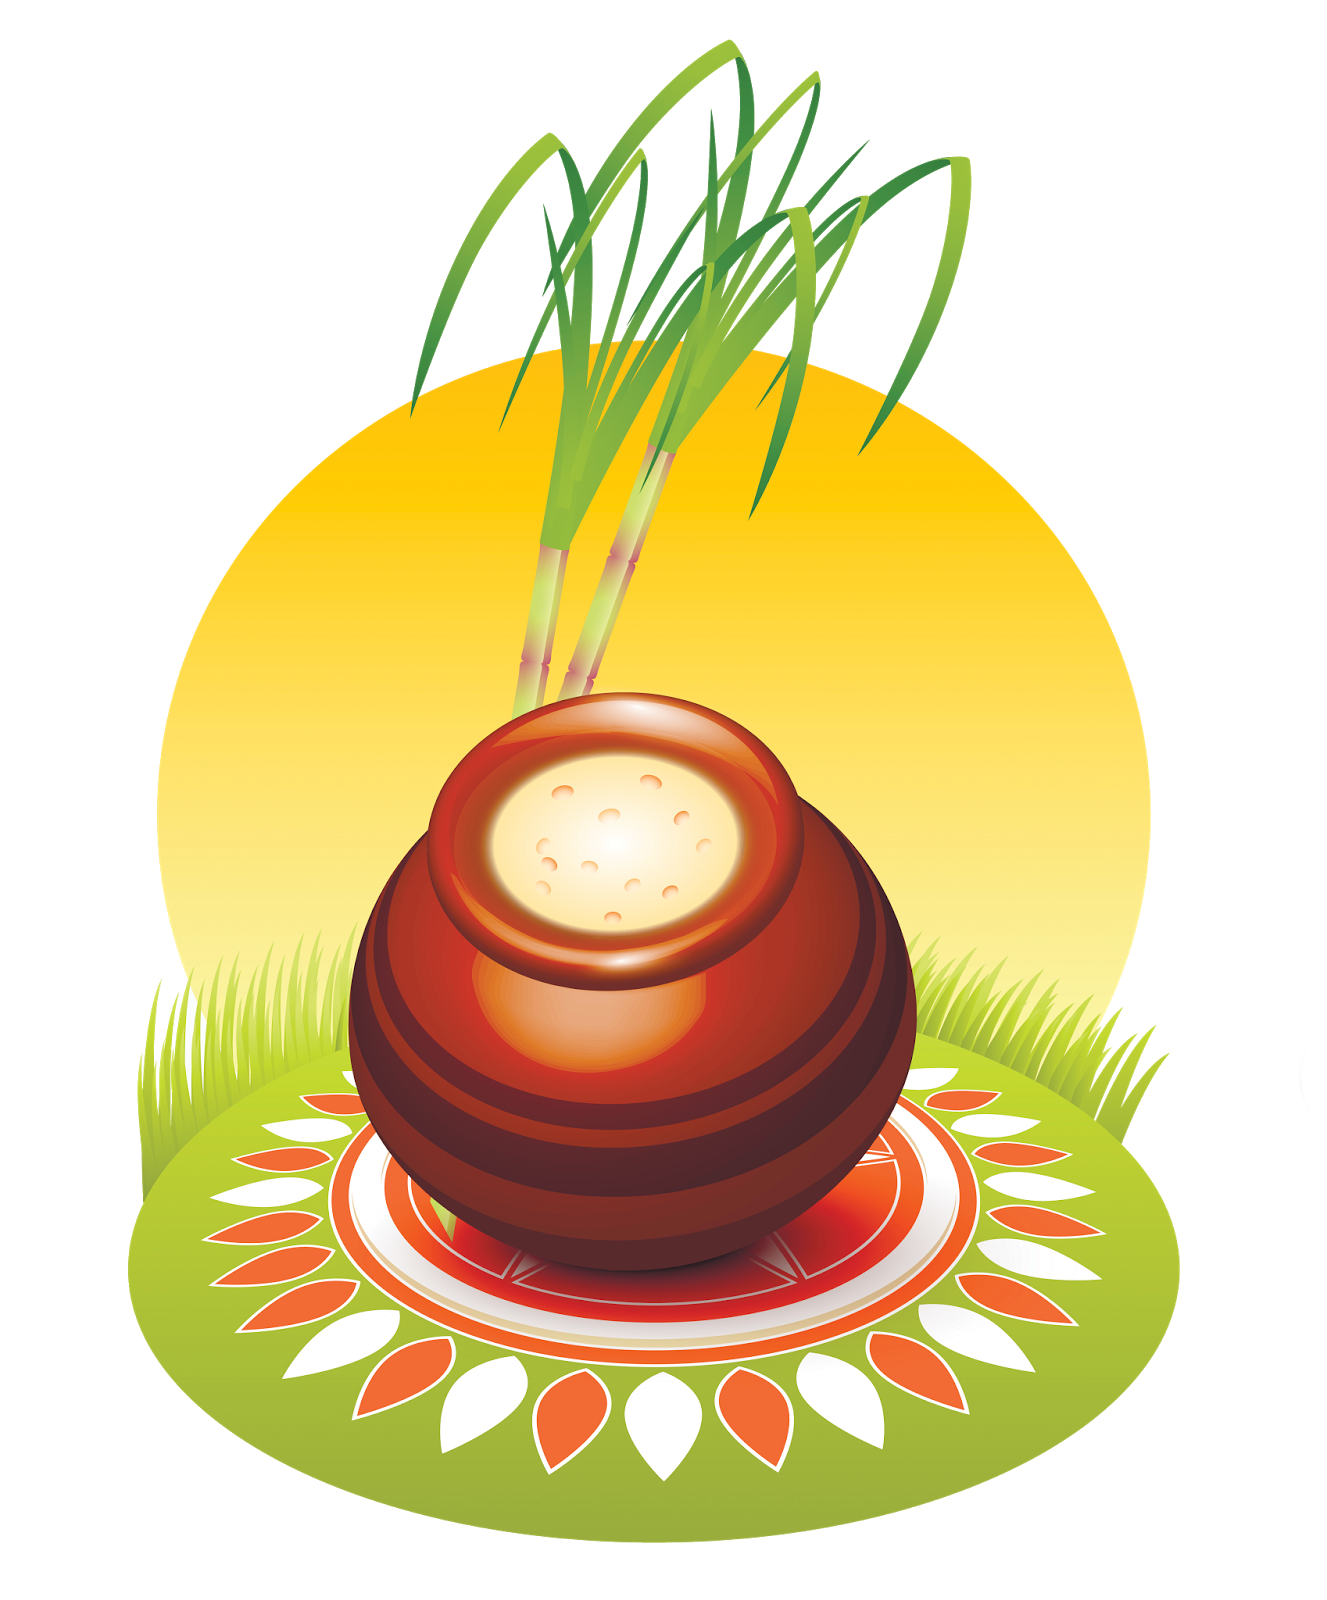 pongal png images